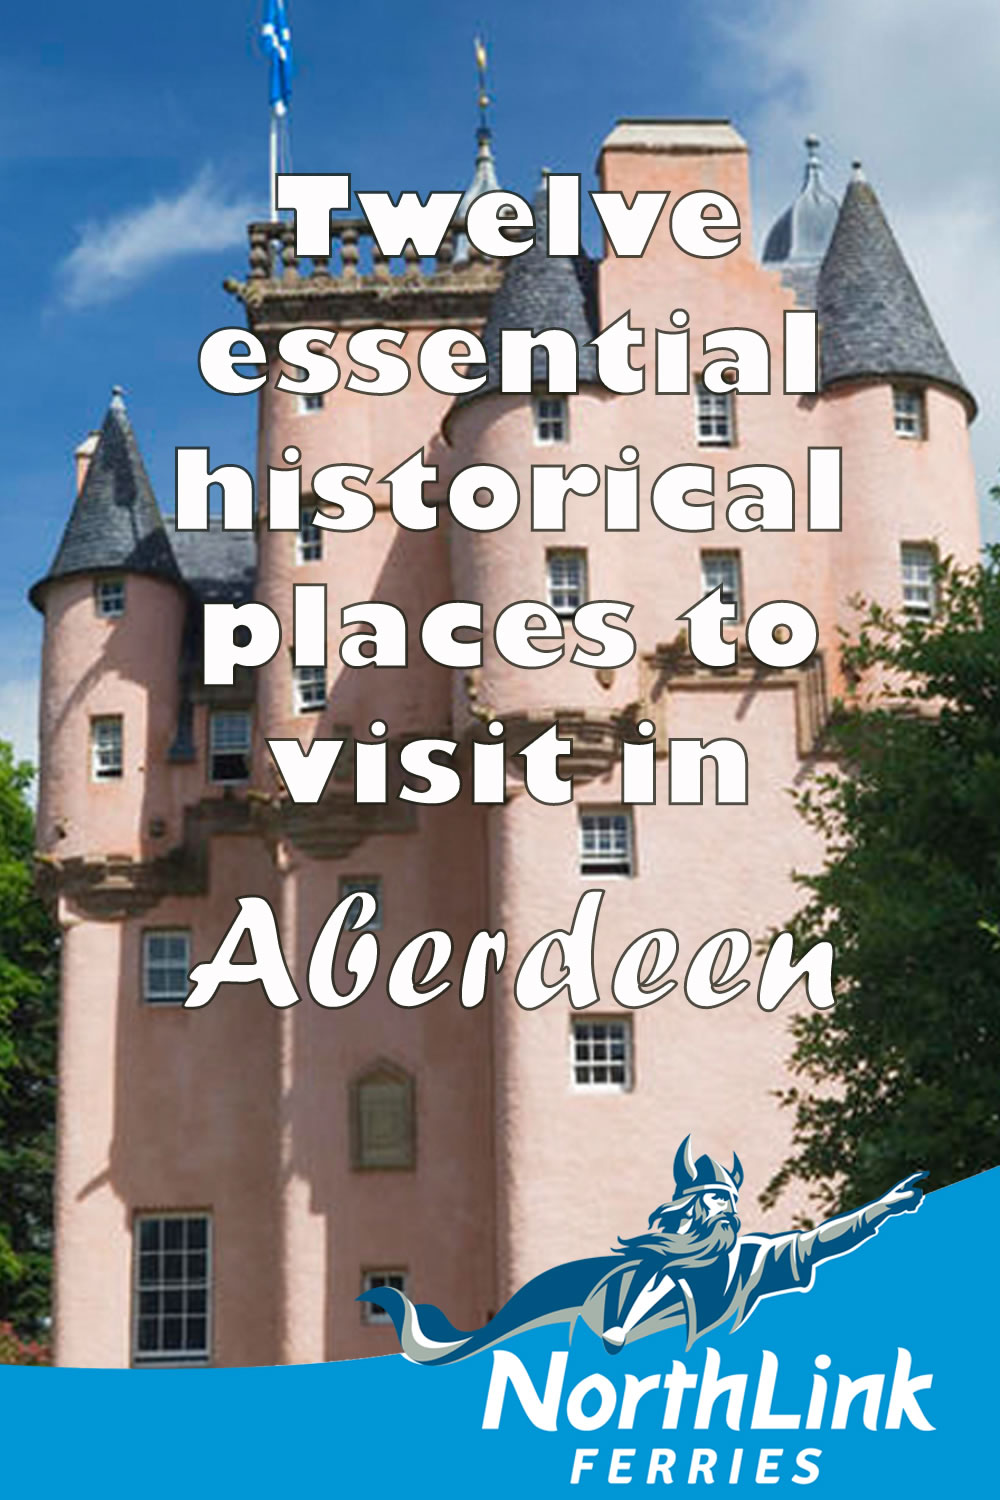 Twelve essential historical places to visit in Aberdeen